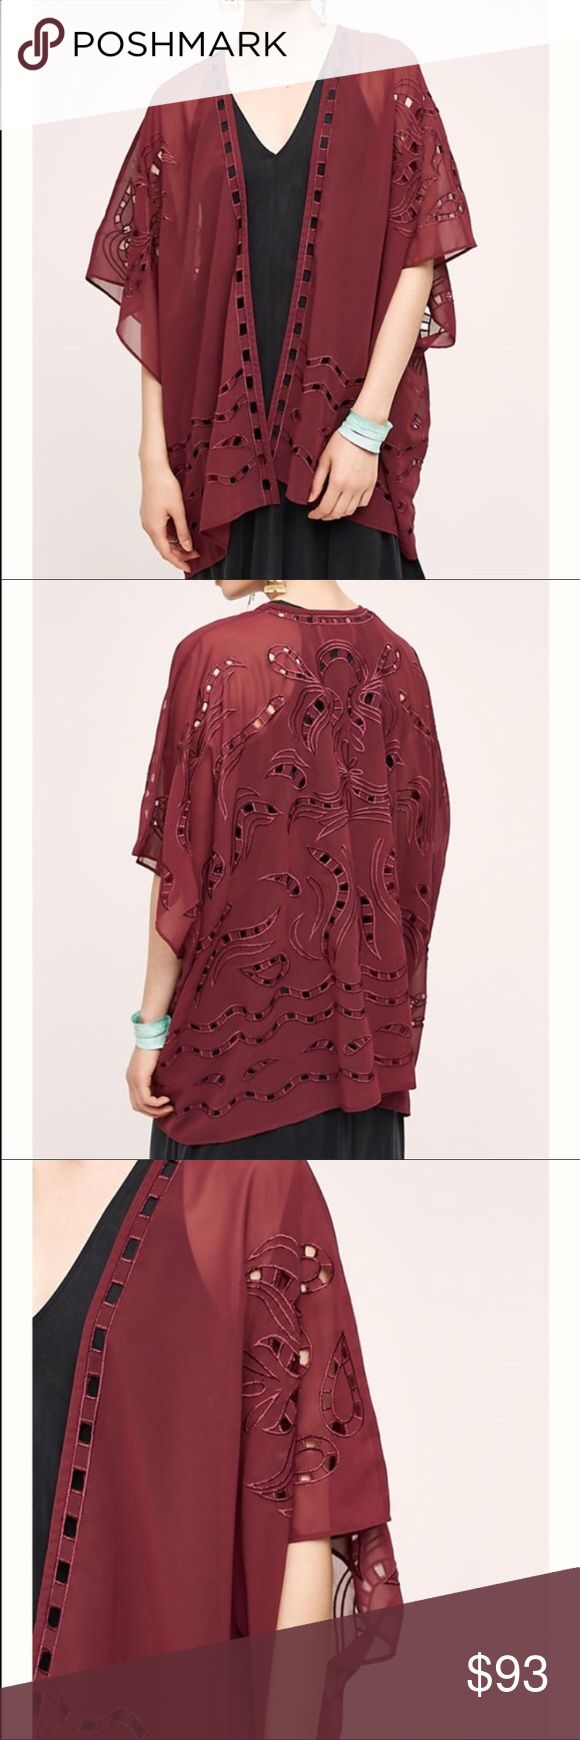 New Anthropologie Brand Burgundy Kimono Cardigan Marked as an xs, small, medium, large, XL so it shows up for everyone who wears those sizes as this is a one size fits all! No matter which size you choose you'll receive a one Size fits all cardigan. Anthropologie brand called Dalia ⚜️I love receiving offers through the offer button!⚜️ Brand new with tags! Fast same or next day shipping!📨 Open to offers but I don't negotiate in the comments so please use the offer button😊 Anthropologie…